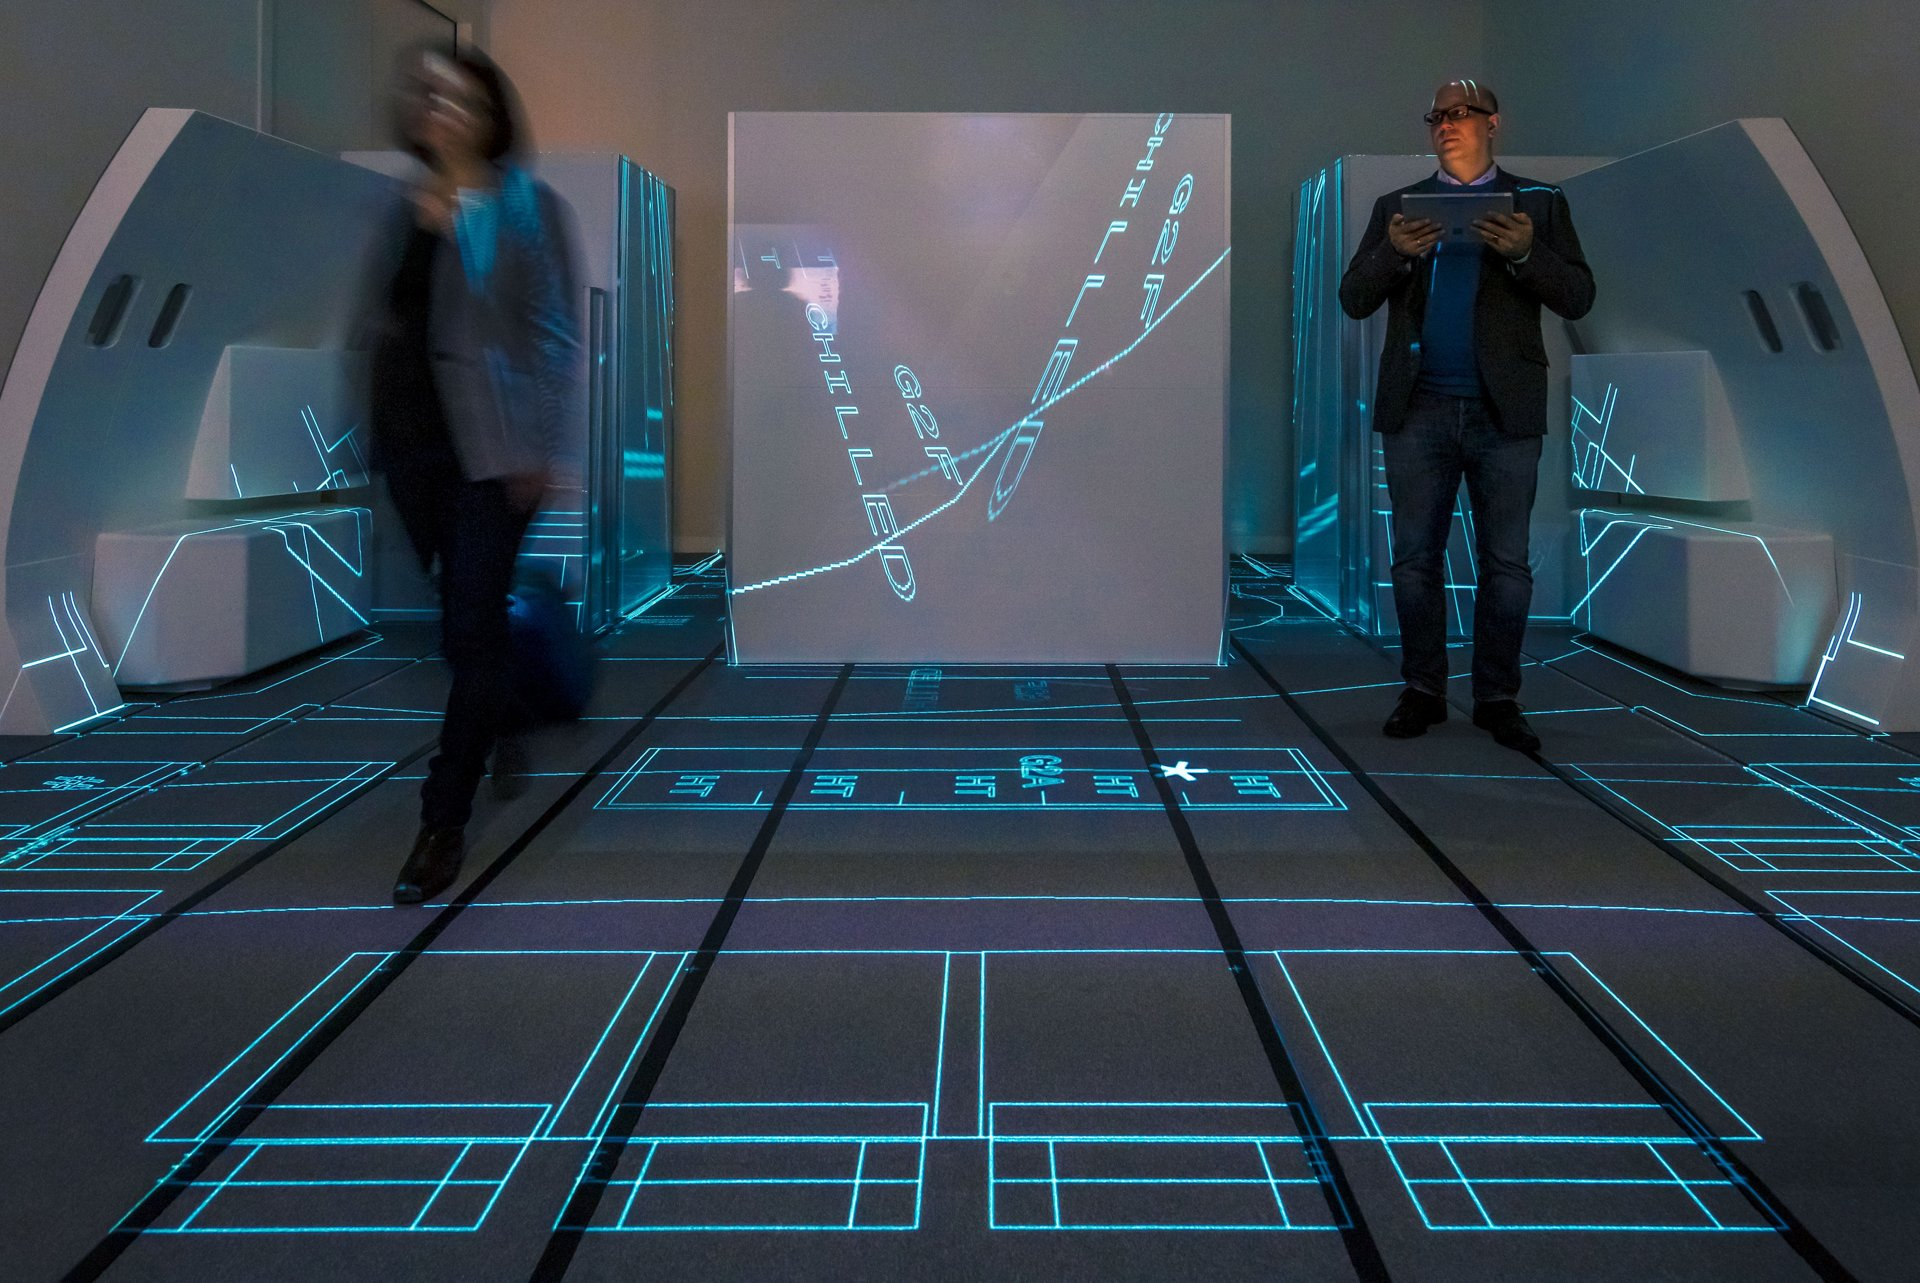 A key addition to Airbus' Airspace Customer Definition Centre (CDC) is its new floor projection system that displays the full-scale real cabin layout on the floor